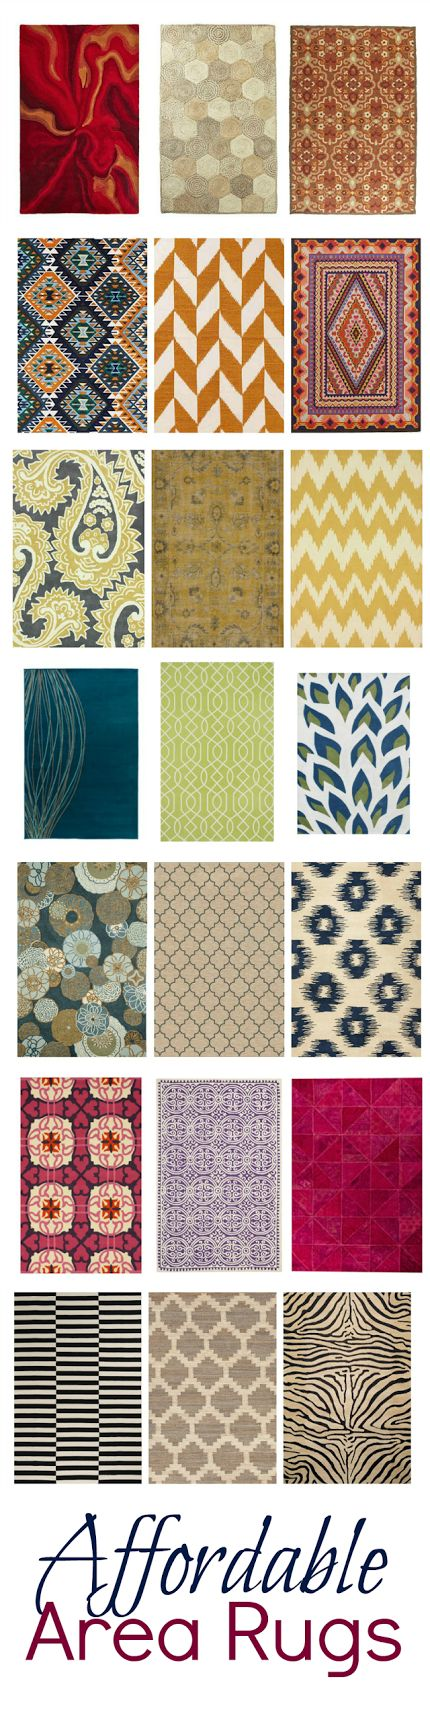 Home Made Modern: Where to Buy Cheap Area Rugs